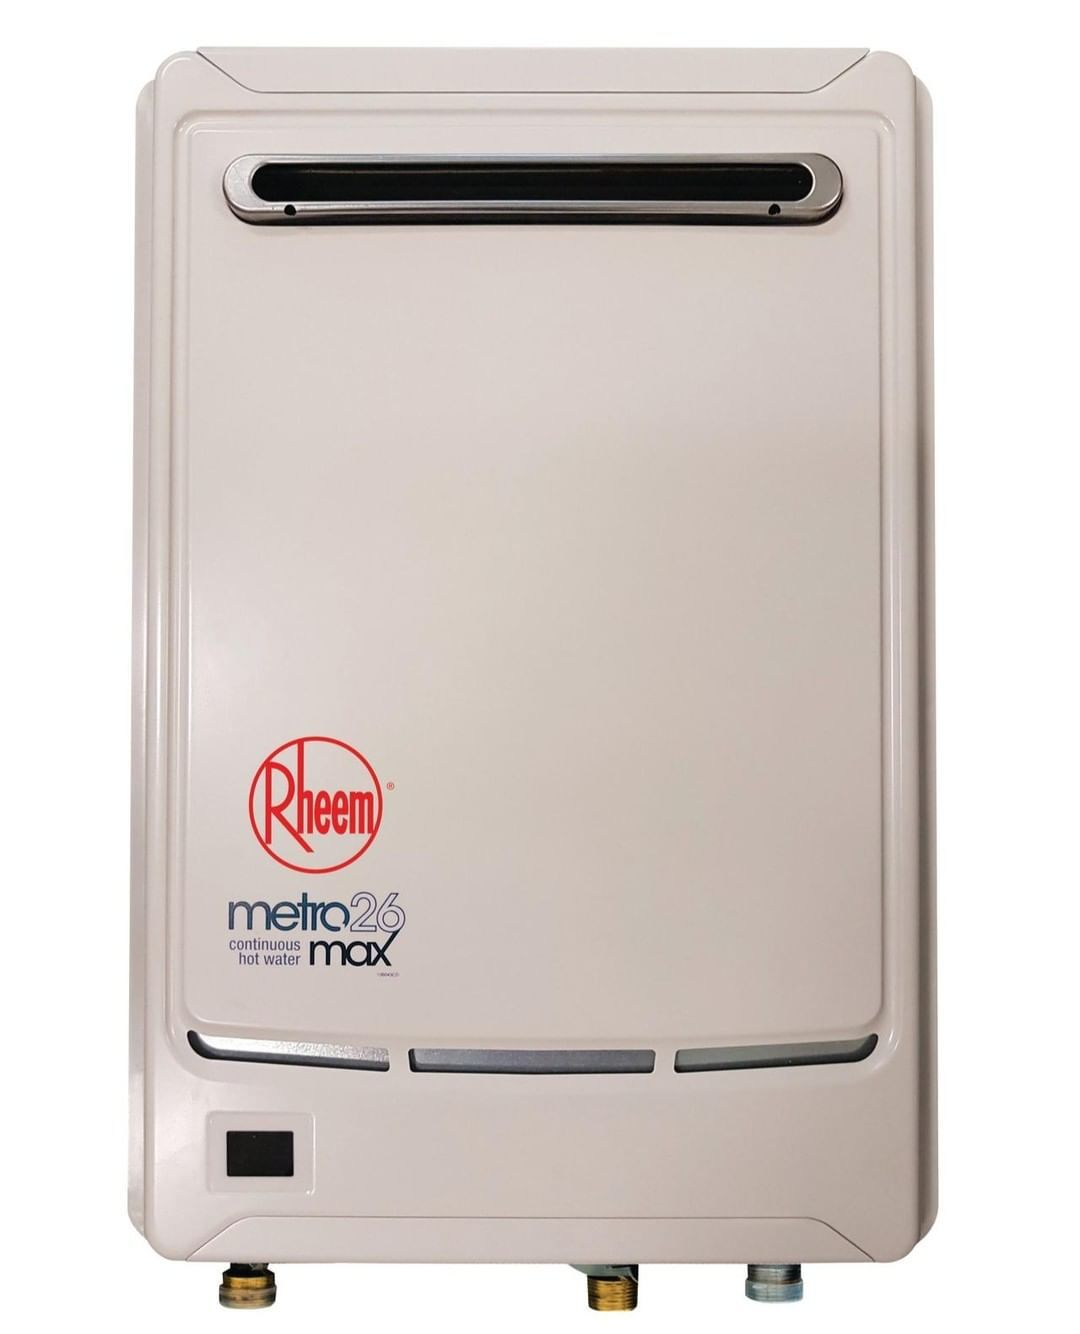 Never Run Out Of Hot Water Again With The Rheem Natural Gas Metro Continuous Flow Water Heater Available Now For Only 740 Rrp 1 660 99 With A 6 Star Effi